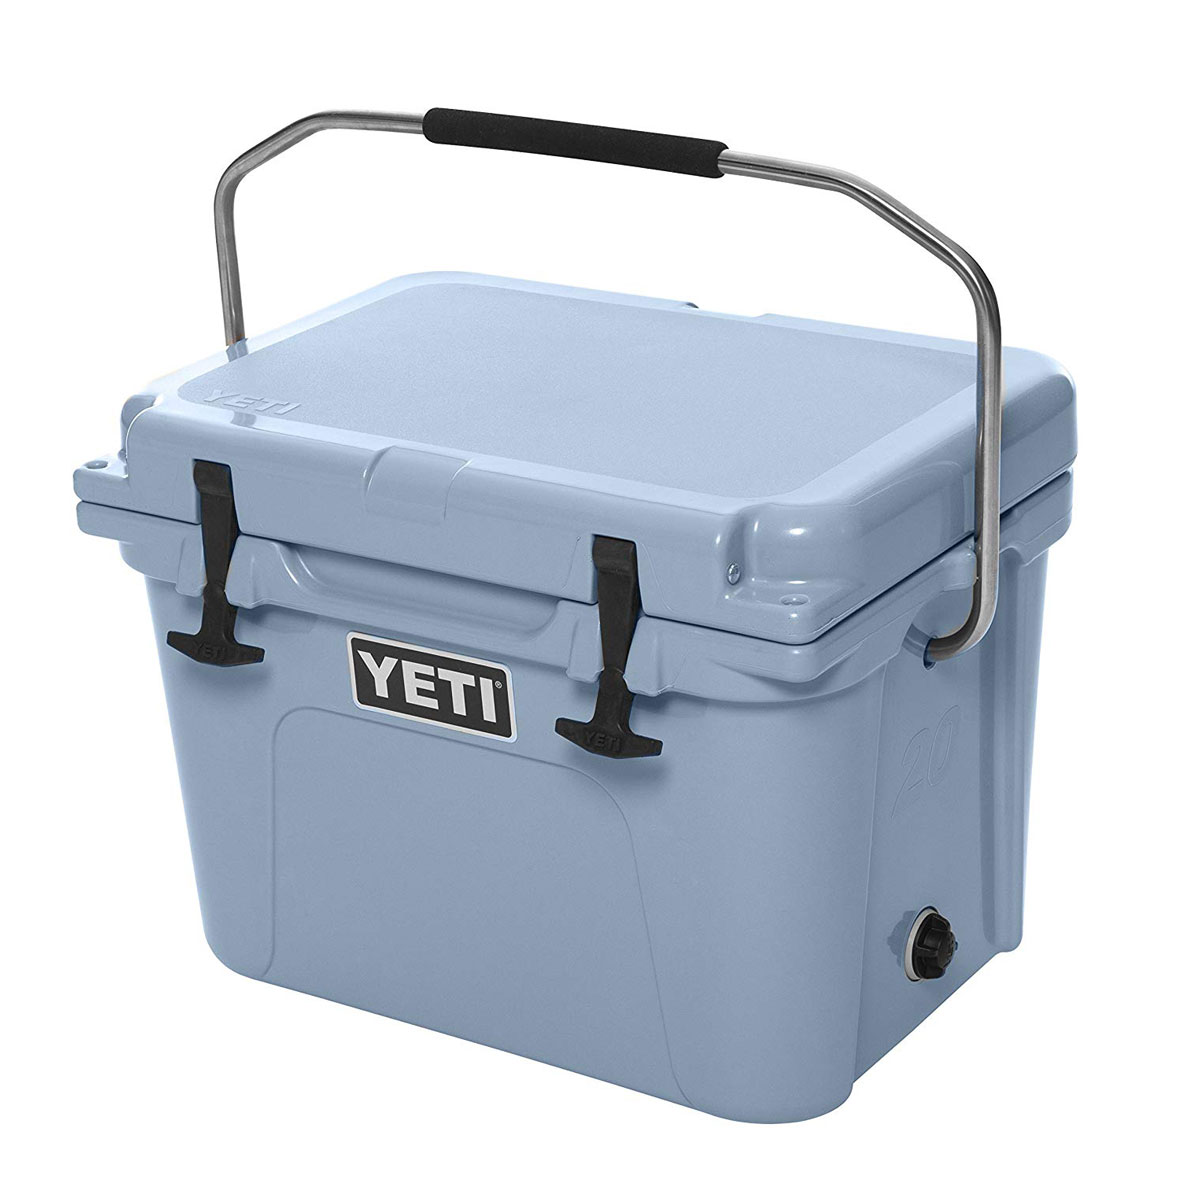 33a0ccbdc5e Our Favorite Yeti Cooler Is on Sale for Prime Day | Food & Wine